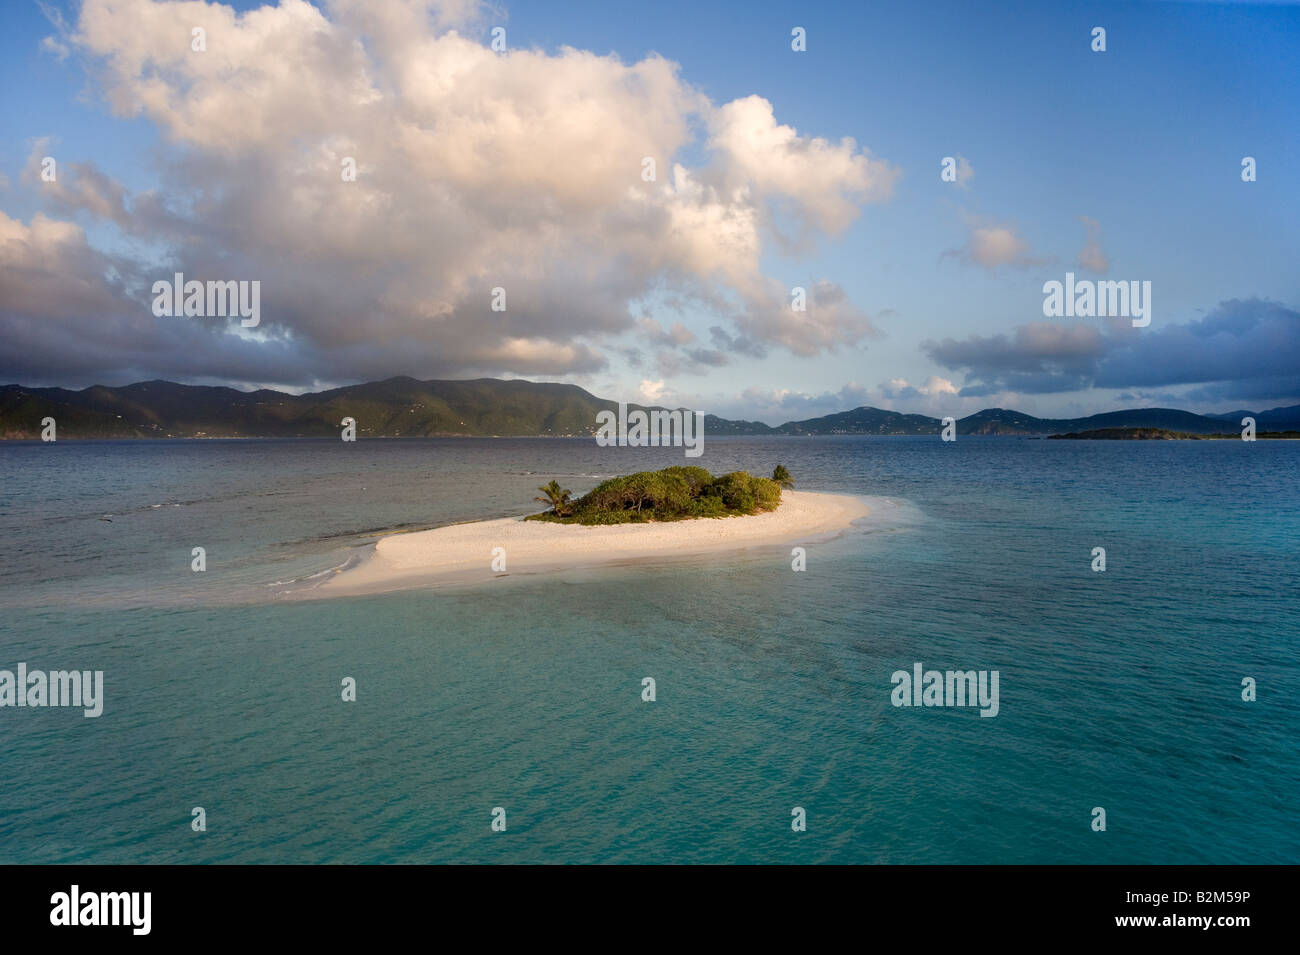 The small deserted island of Sandy Spit British West Indies This is a rare view of the normally crowded island - Stock Image